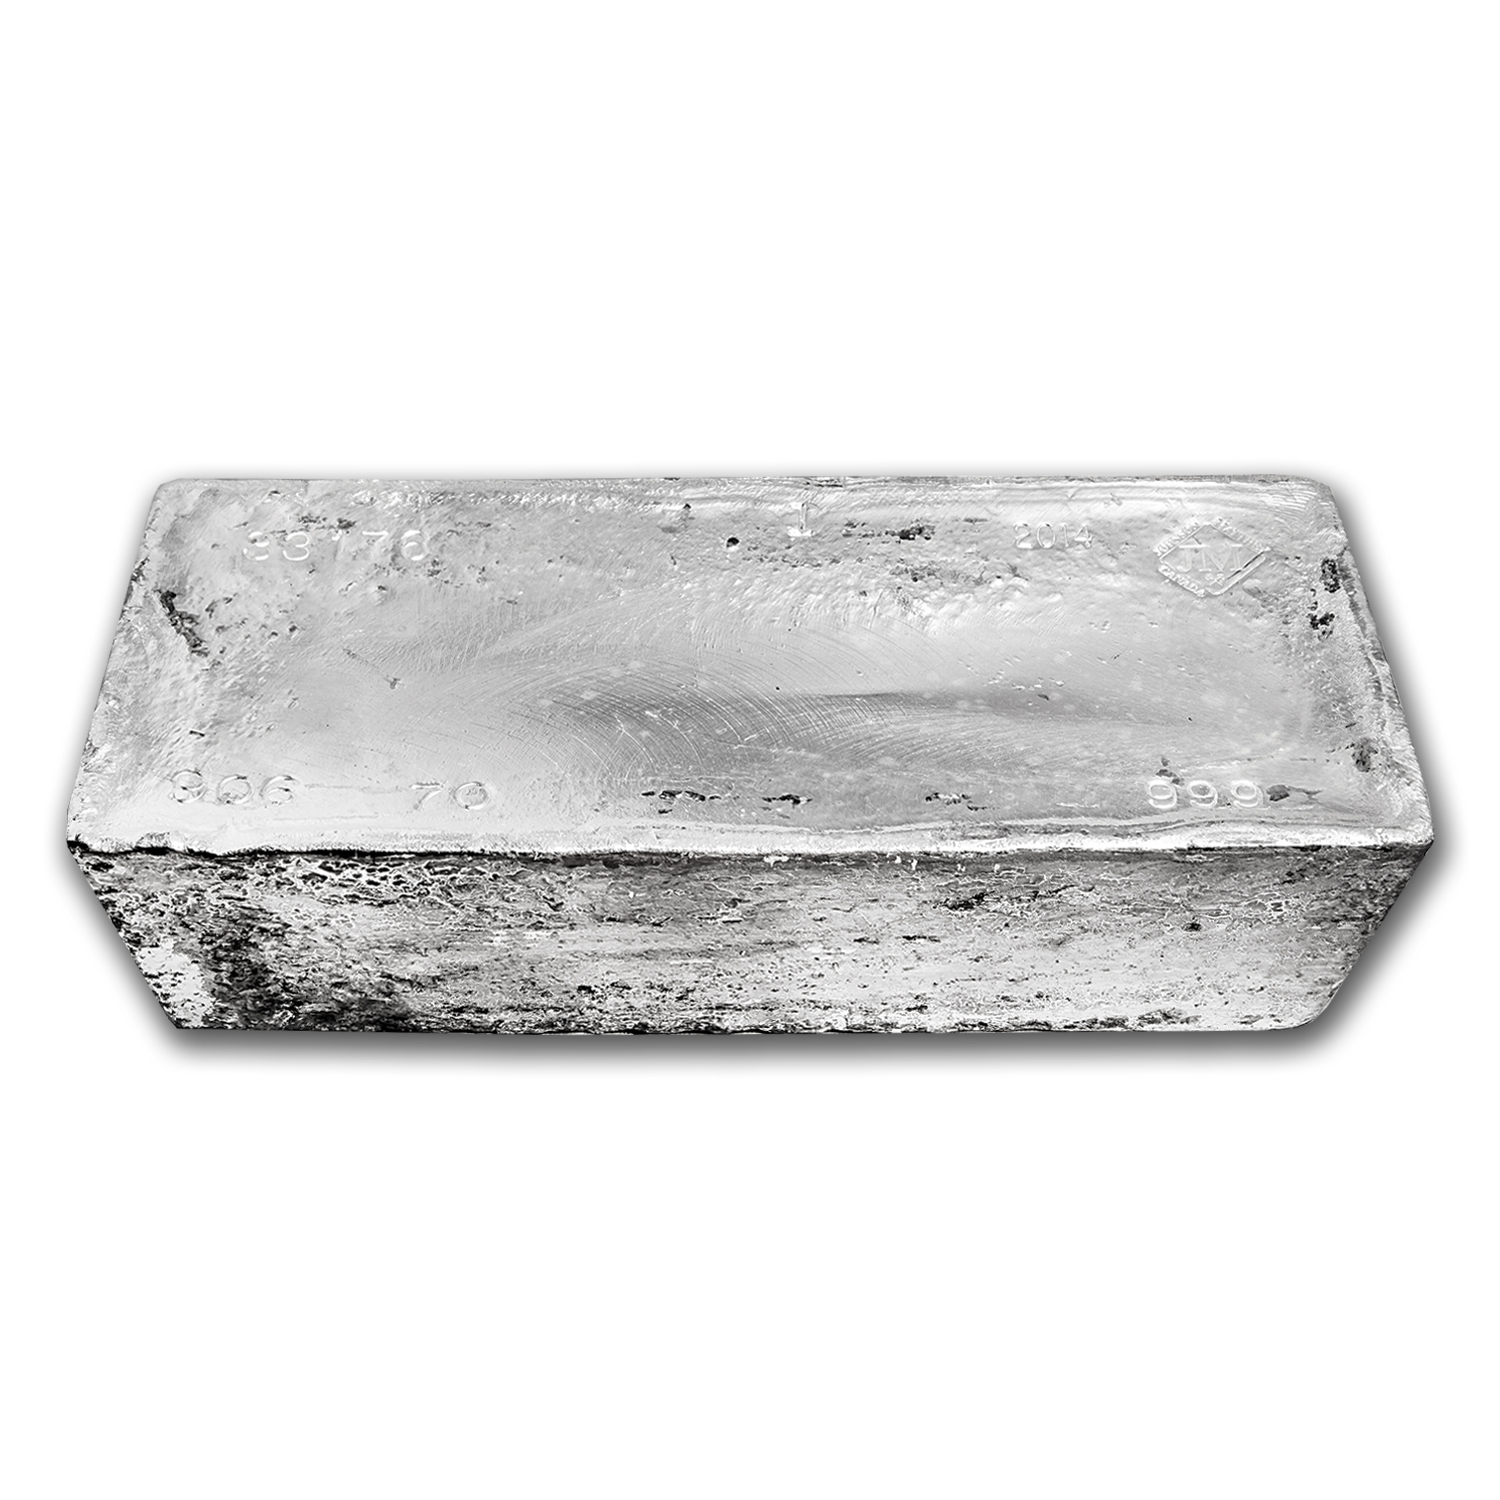 997.40 oz Silver Bars - Johnson Matthey